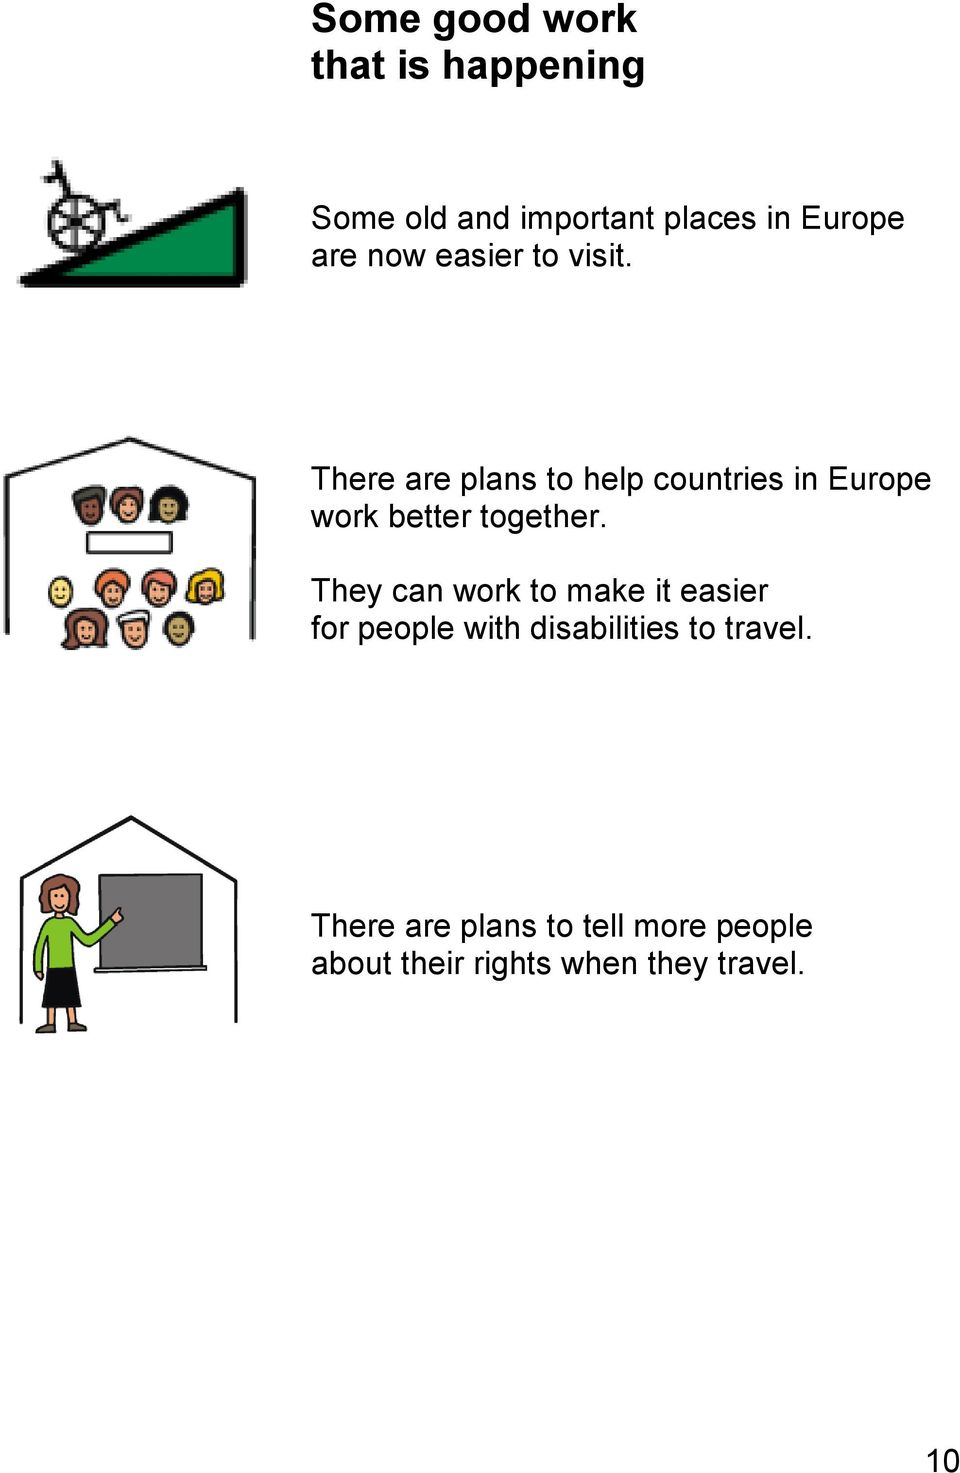 There are plans to help countries in Europe work better together.